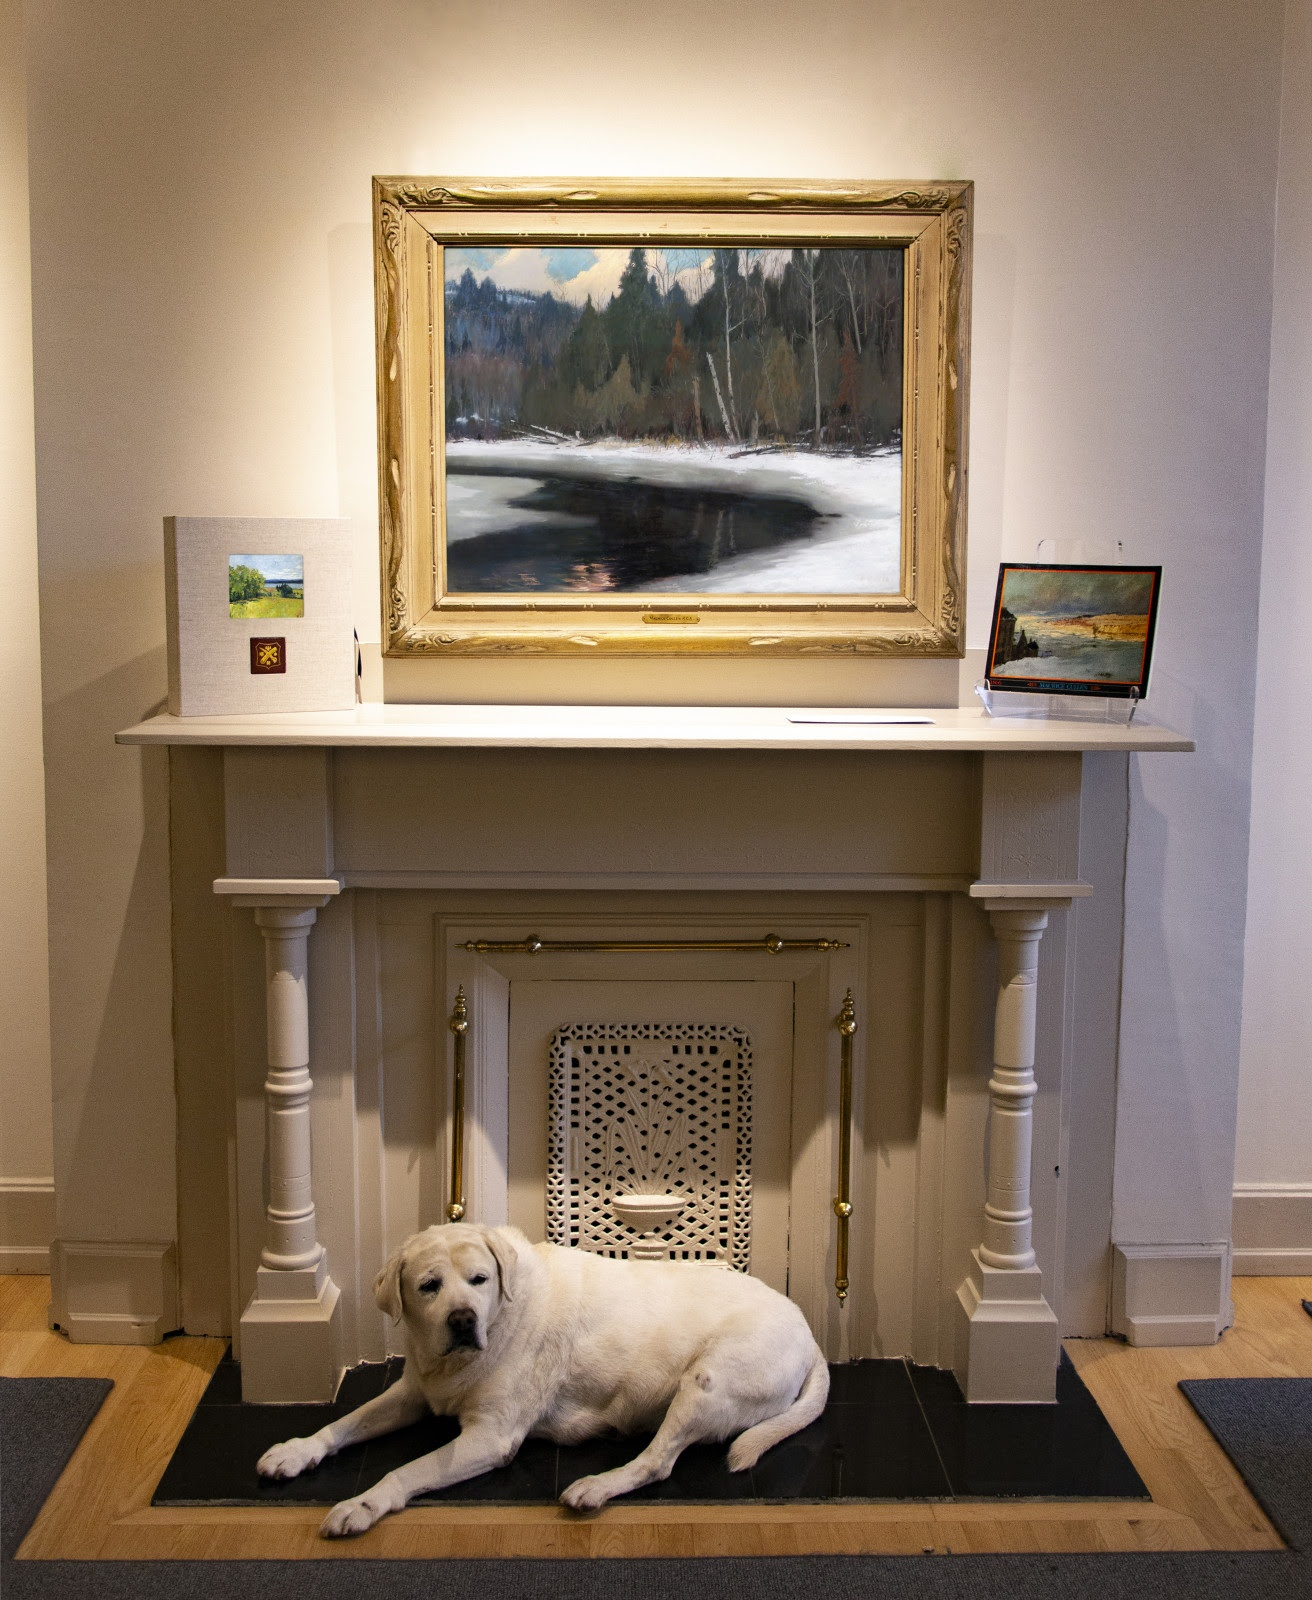 wilight in the Laurentians above the fireplace at Galerie Alan Klinkhoff in Montreal, steadfastly protected by Winston.